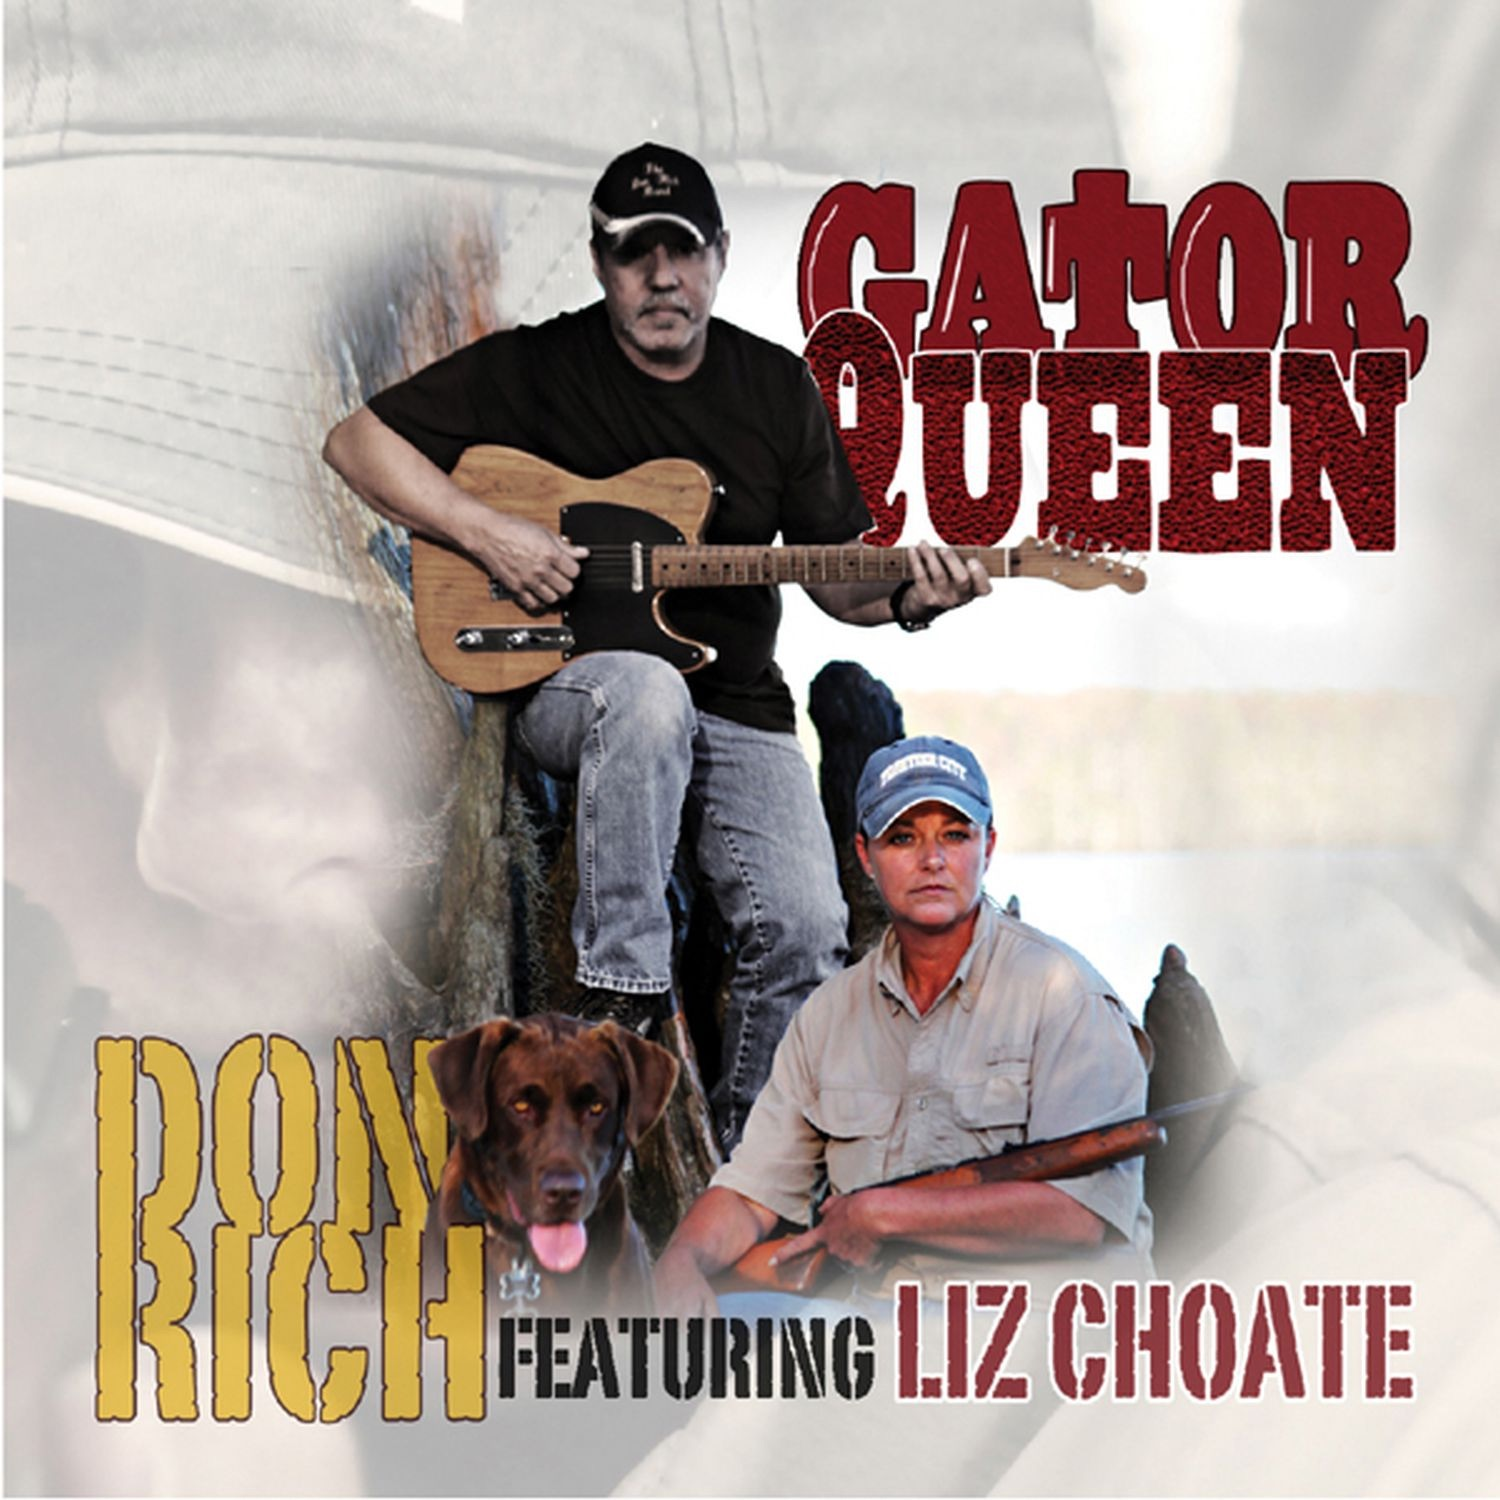 Gator Queen (feat. Liz Choate) - Single